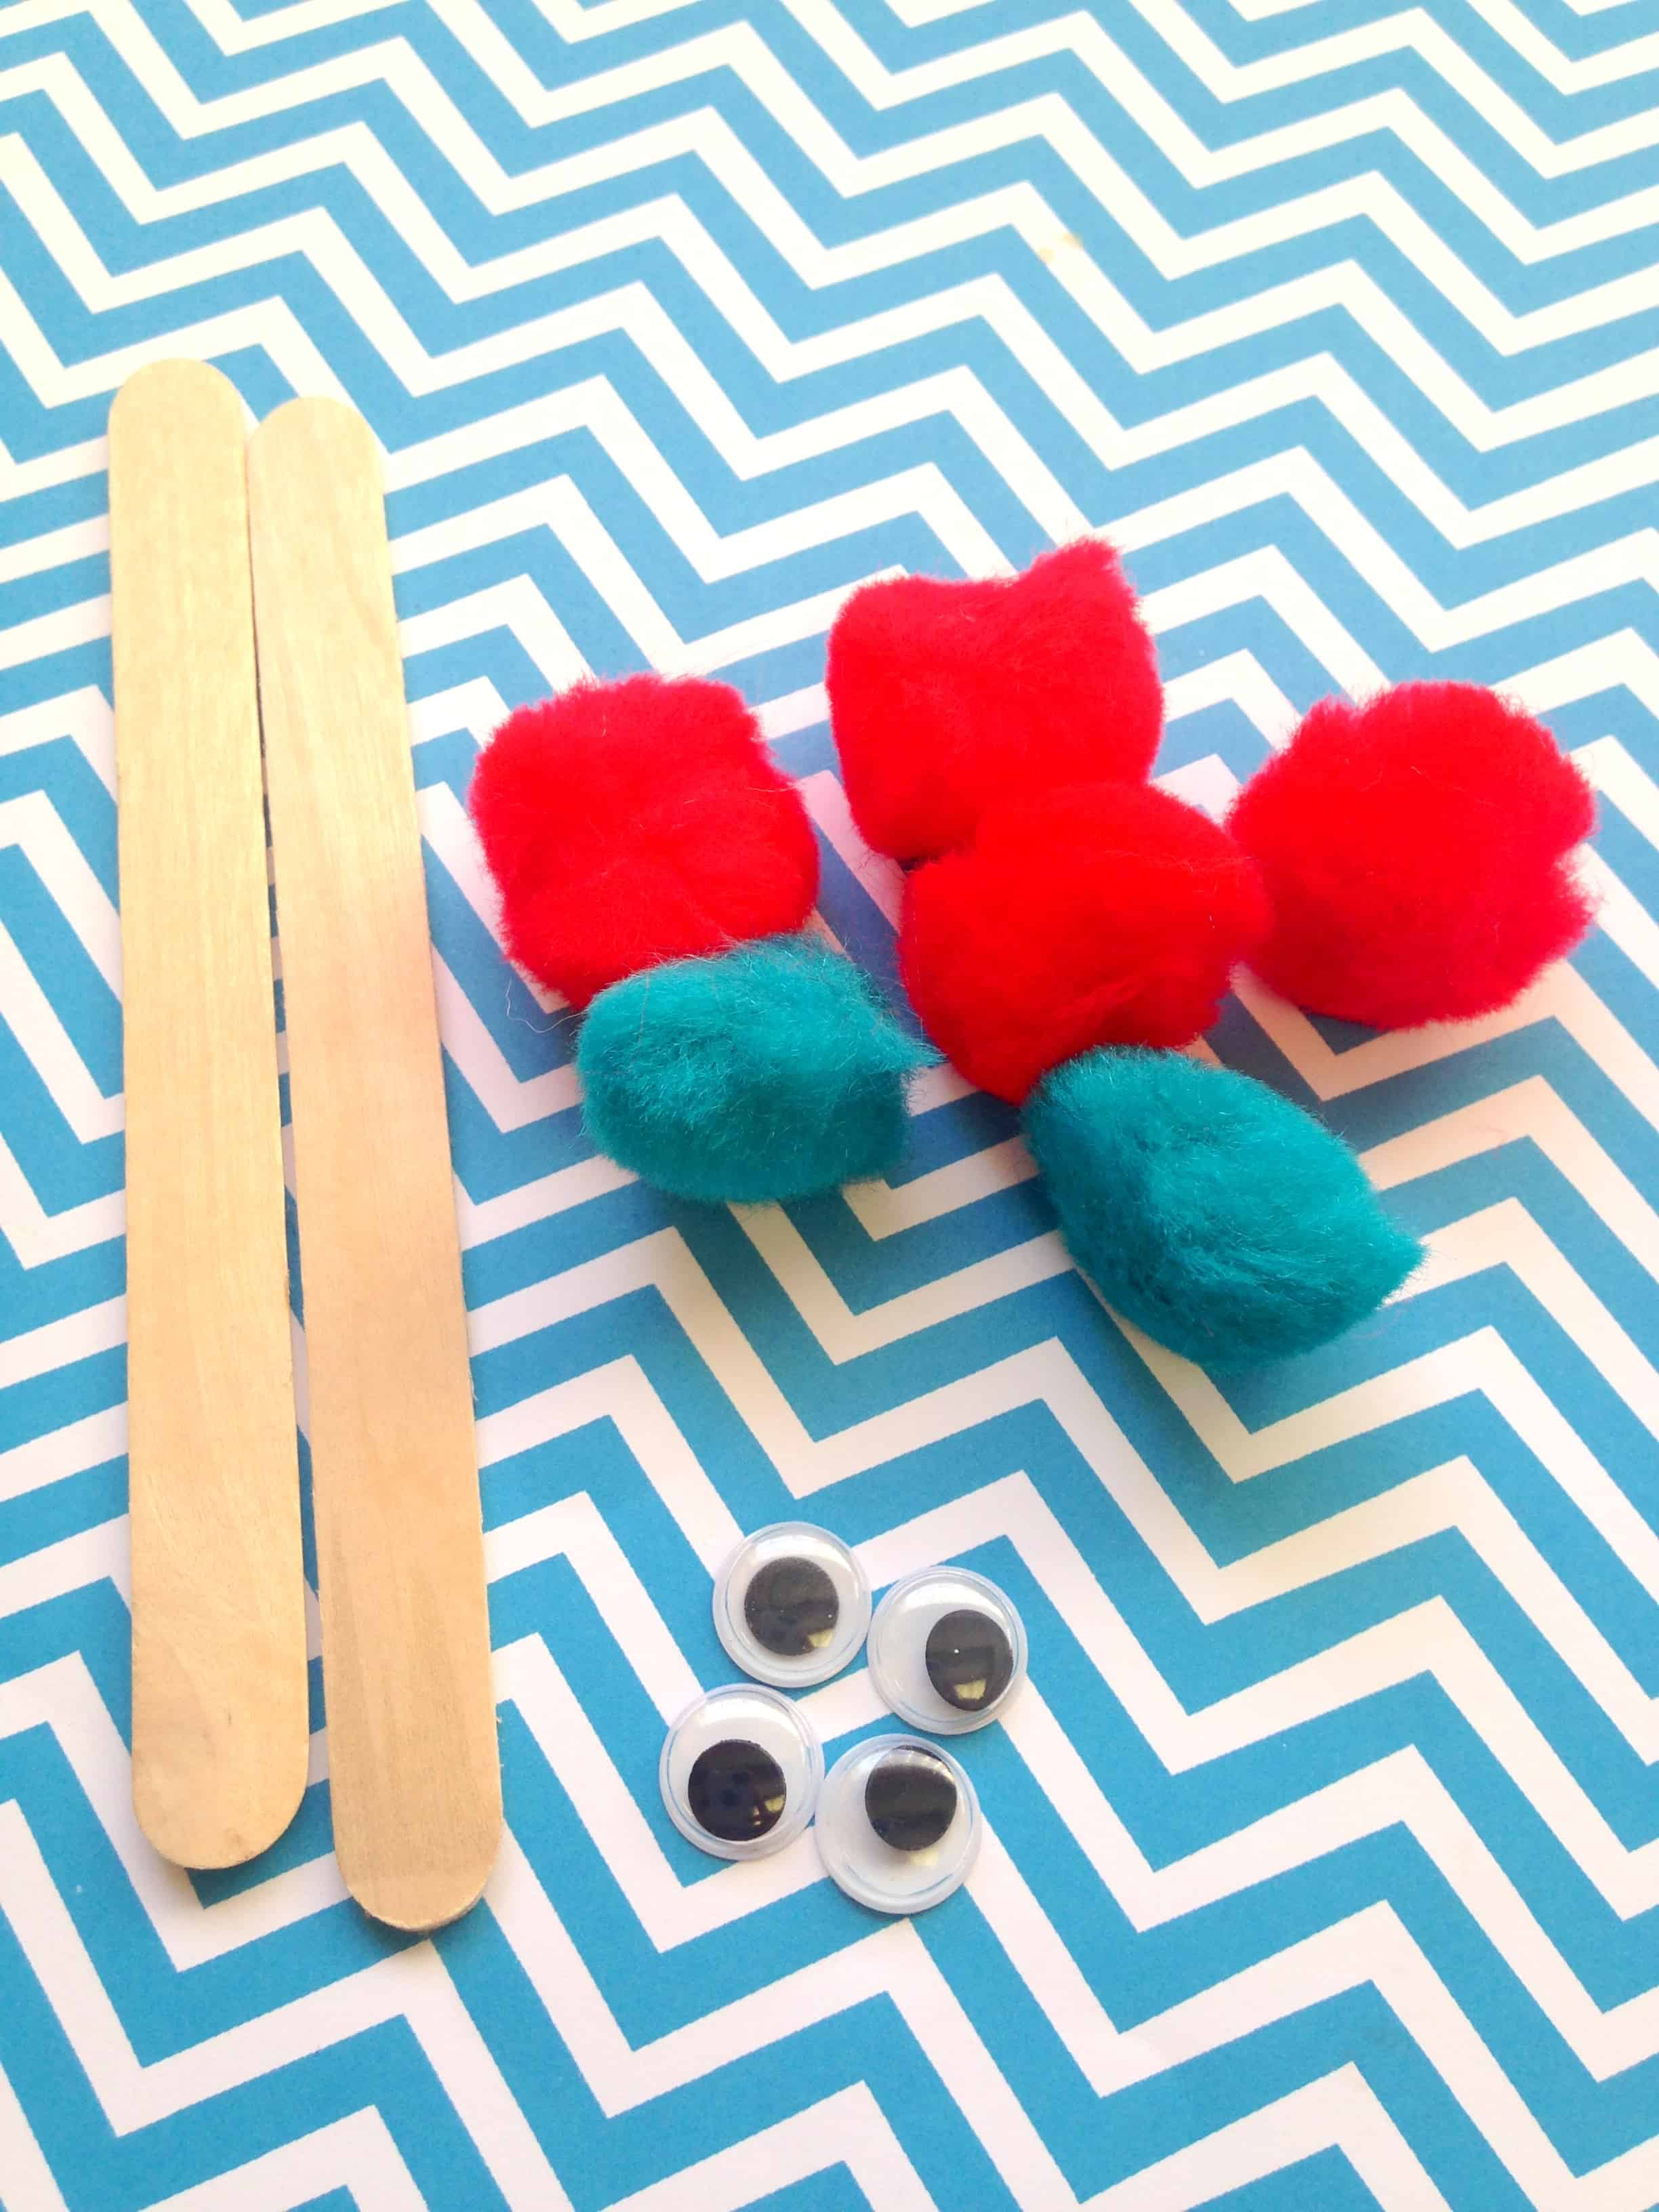 Dr Seuss Thing 1 And Thing 2 Puppets Kids Craft